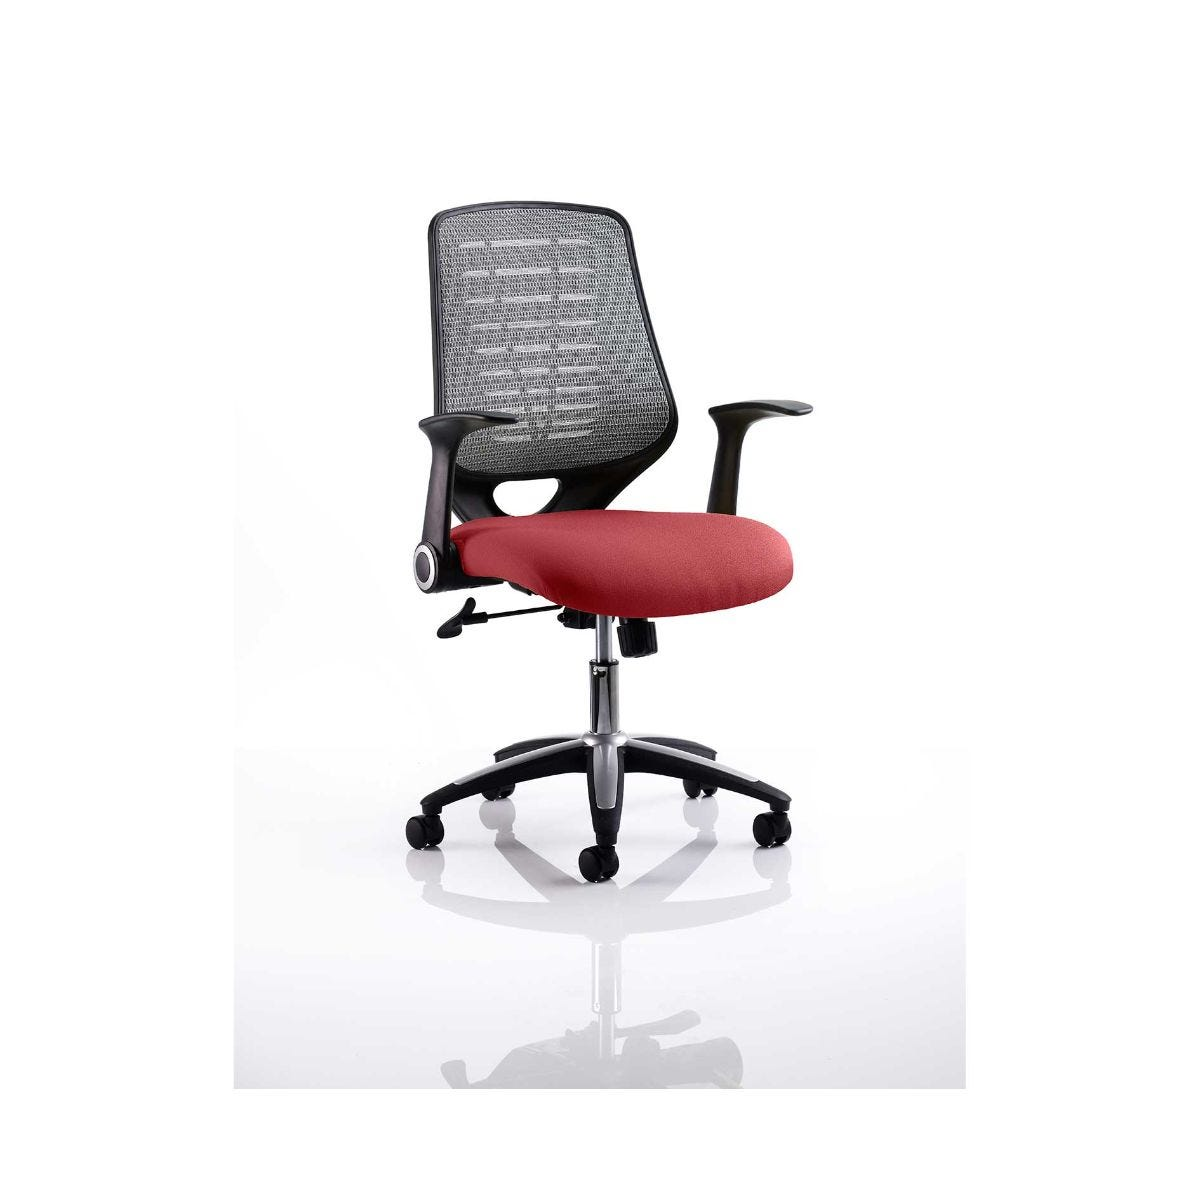 Relay Mesh Back Office Chair Silver, Chilli